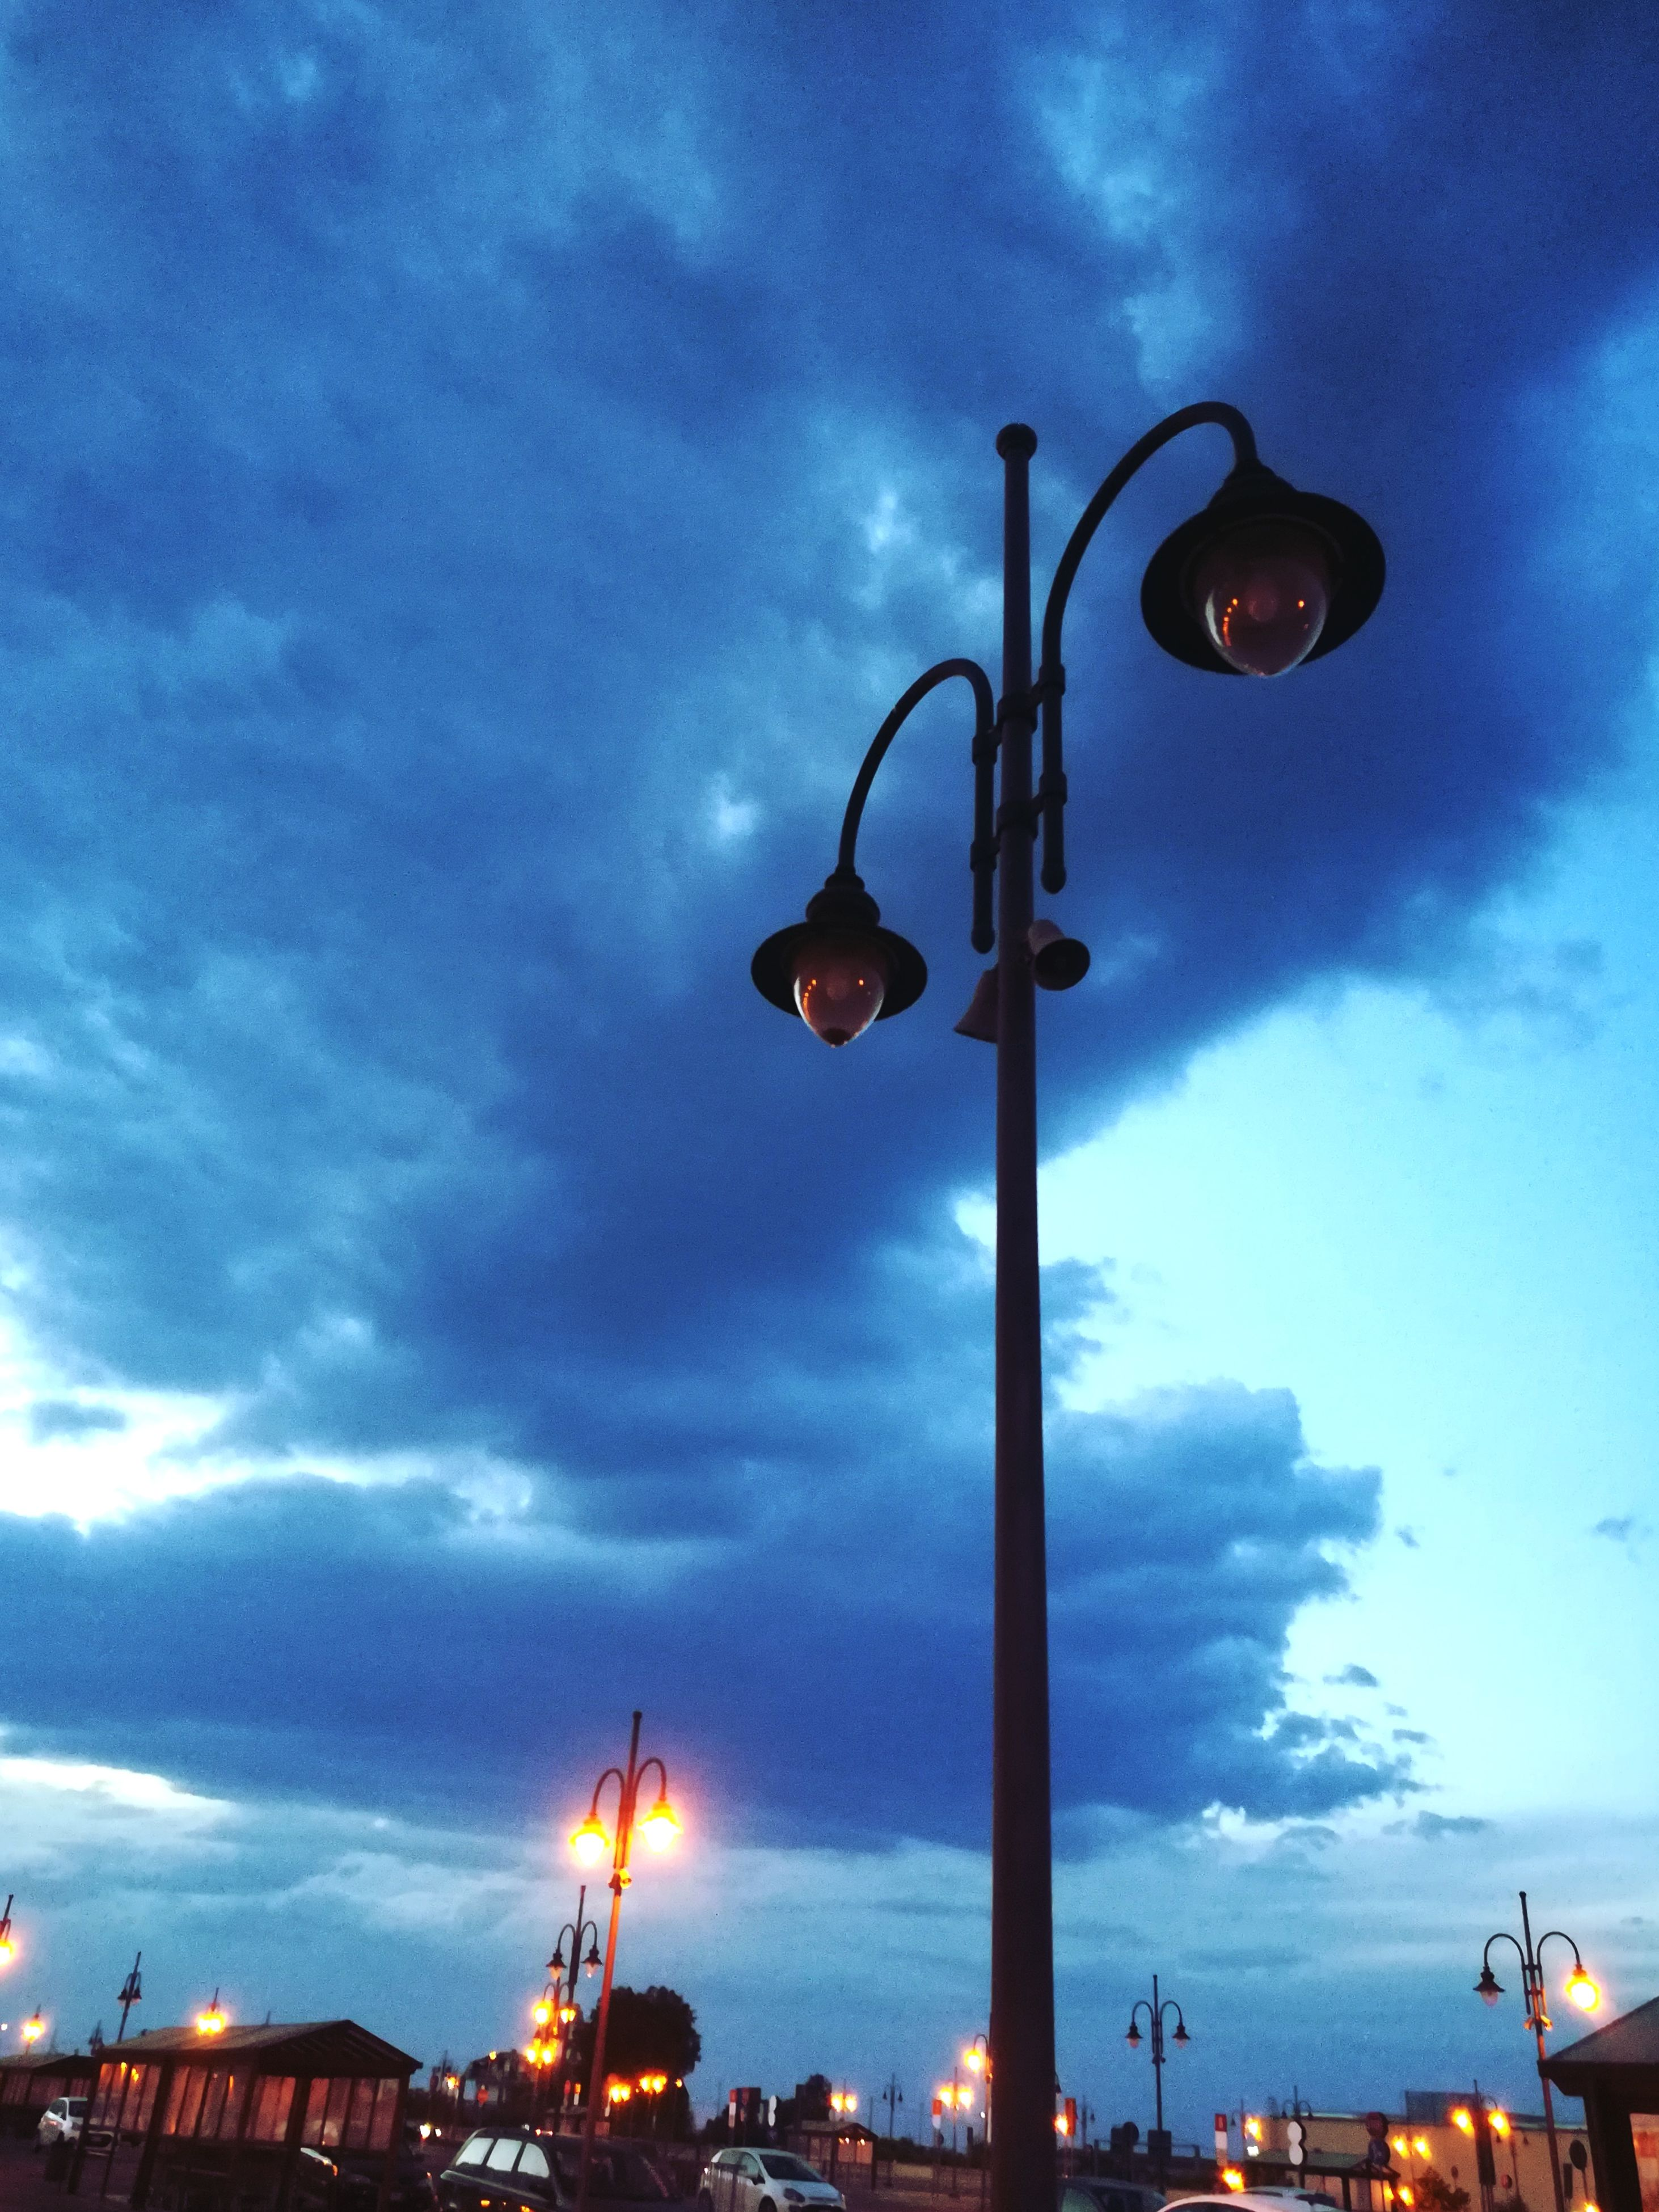 cloud - sky, sky, low angle view, street light, architecture, built structure, illuminated, no people, outdoors, building exterior, day, nature